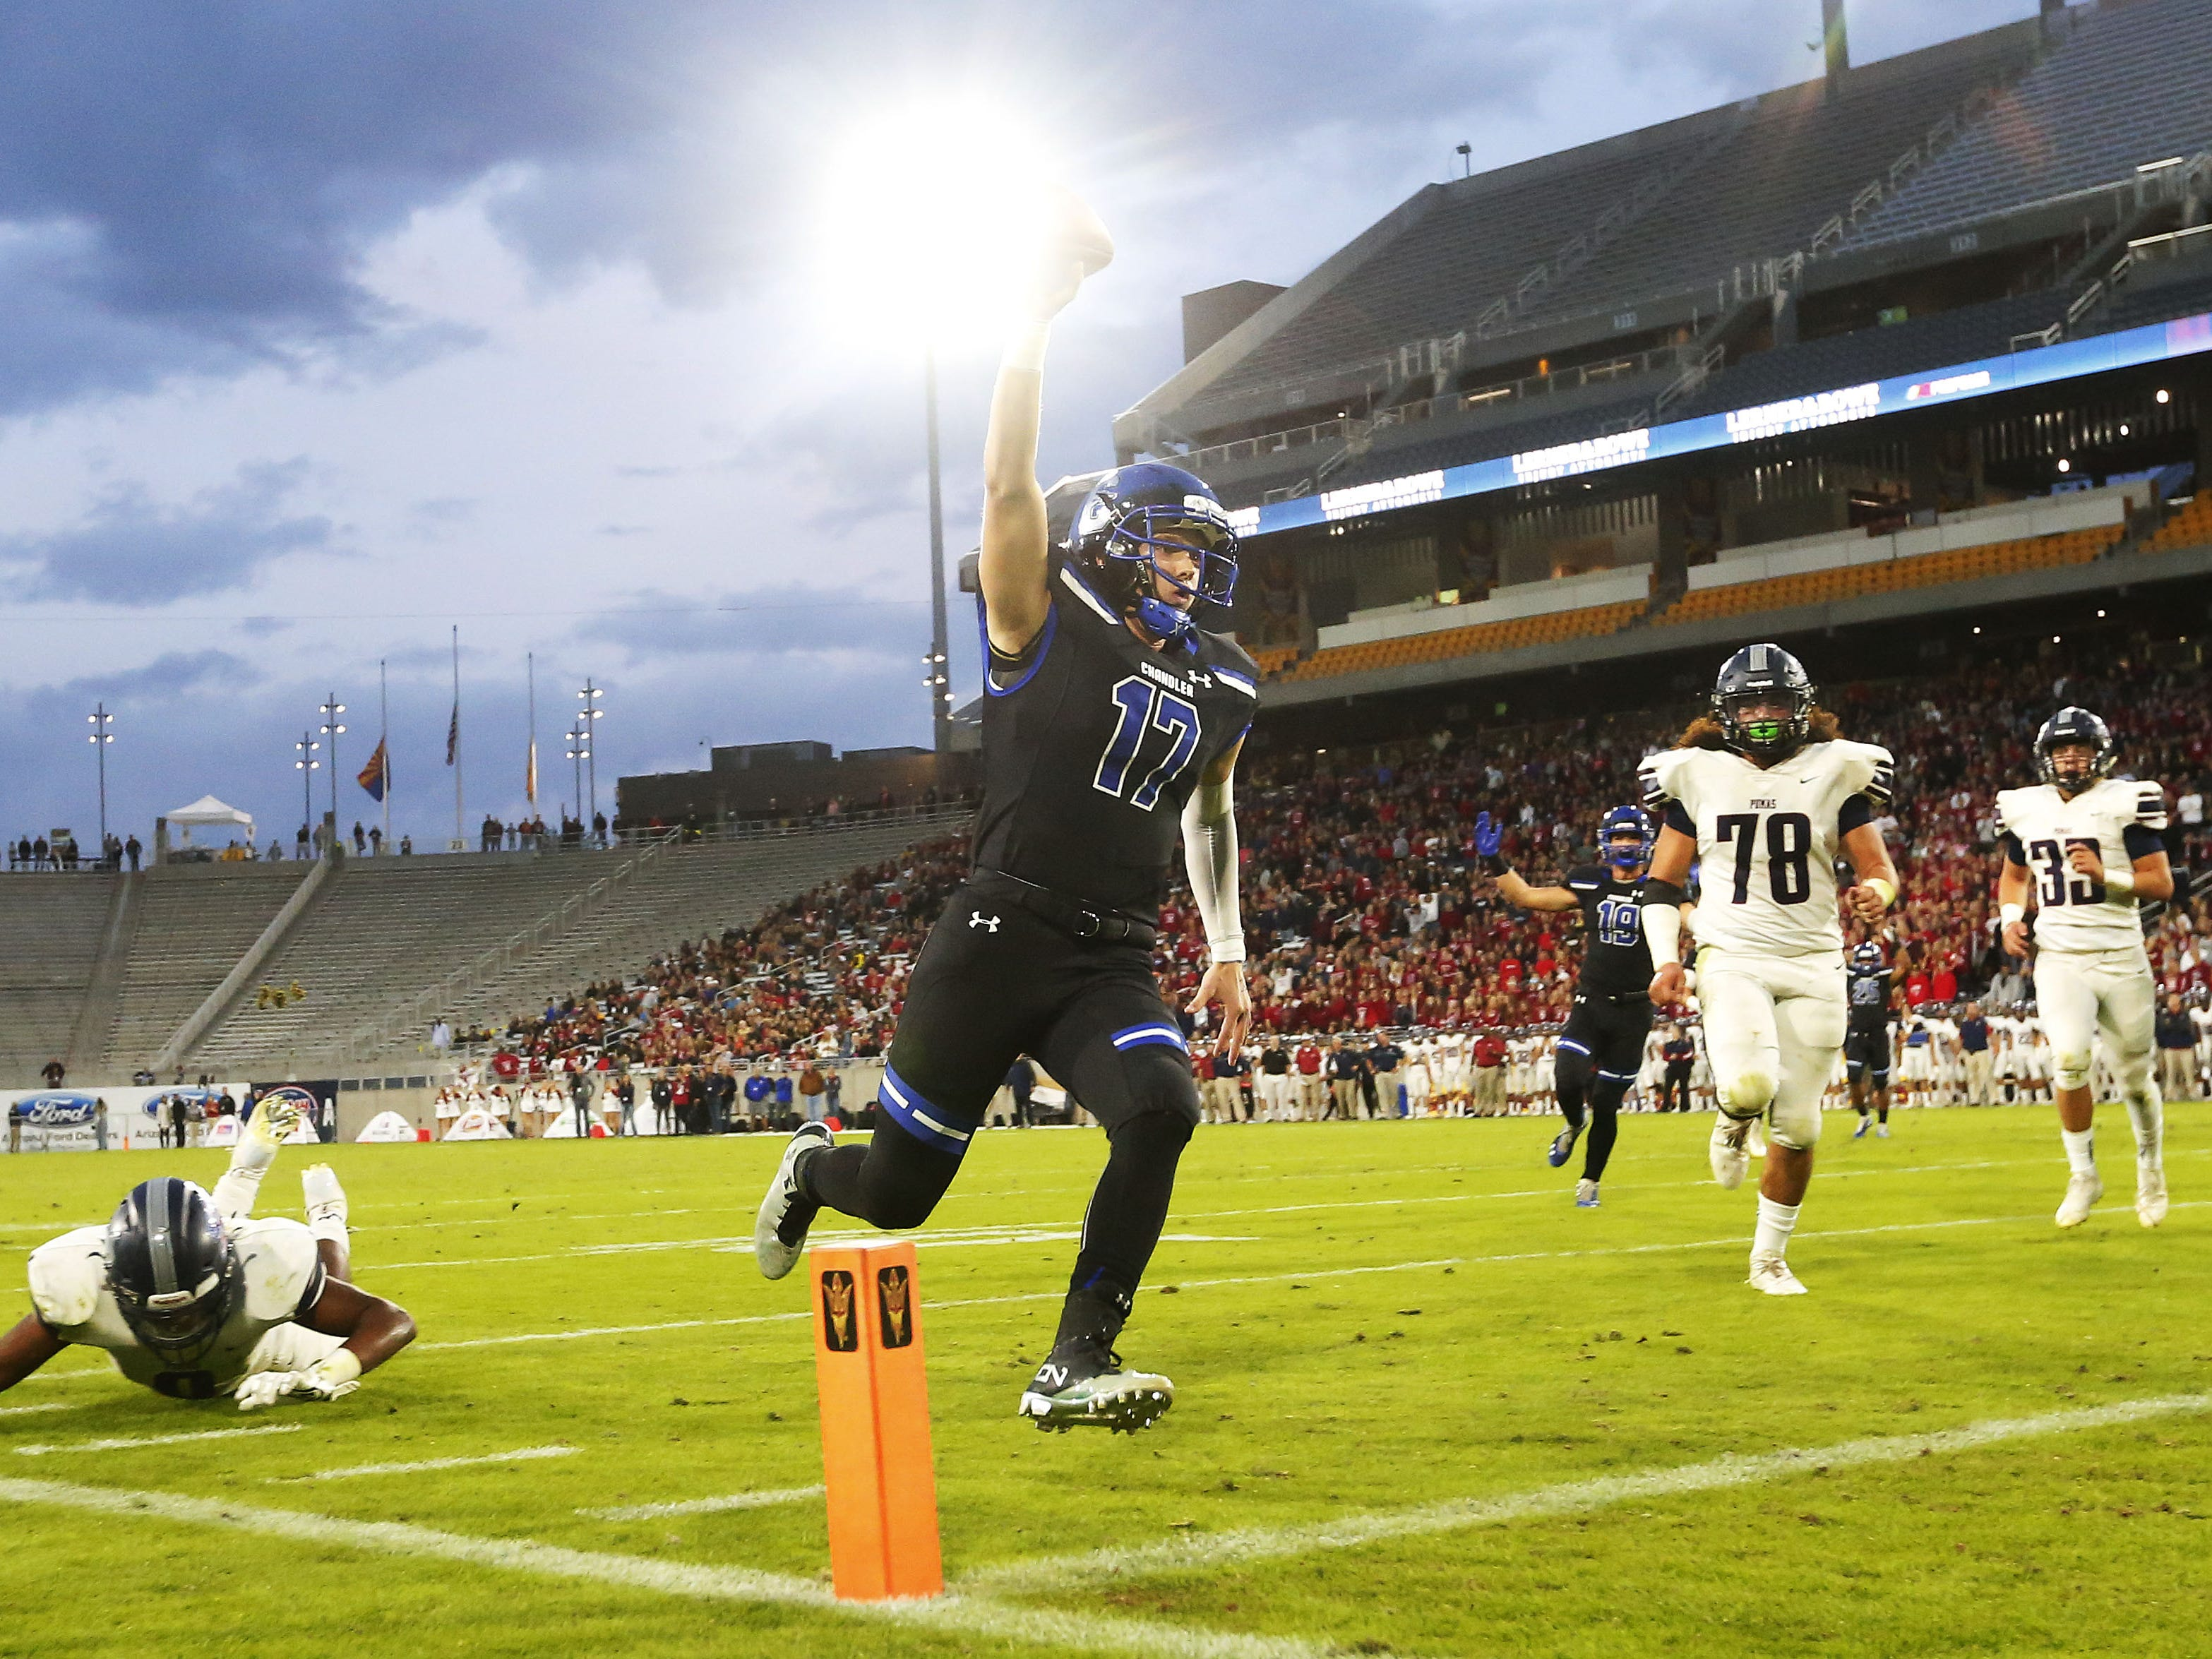 Chandler quarterback Jacob Conover (17) scores a touchdown against Perry during the 6A state football championship at Sun Devil Stadium December 1, 2018. #azhsfb